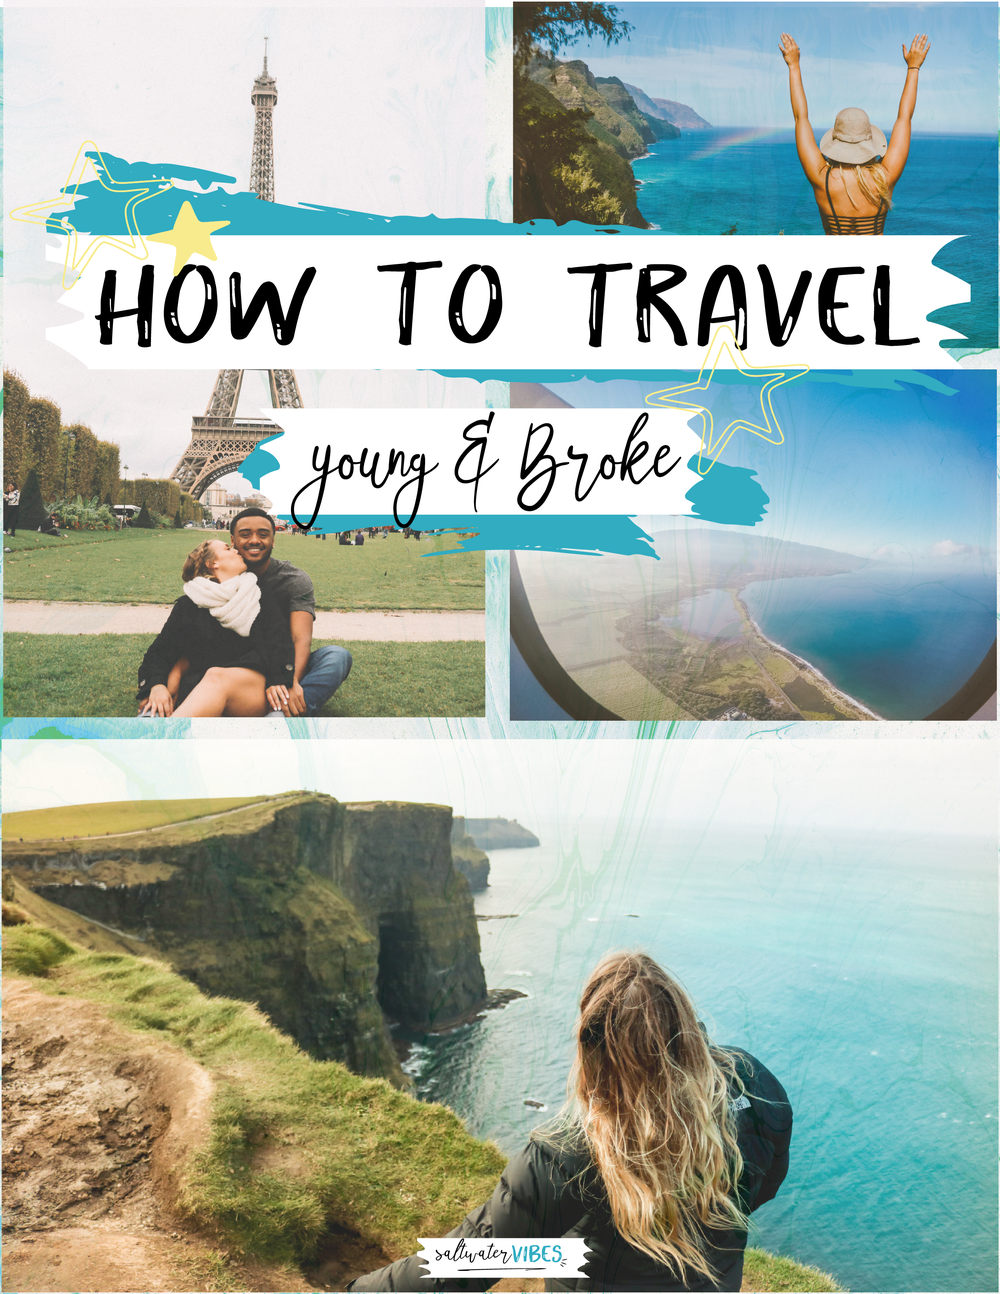 How To Travel Young And Broke - In less than one years time, Rashawn and I were able to travel to fifteen countries, twelve US States, and three continents. We didn't have fancy sponsorships or any money saved. We worked hard at out minimum wage jobs and choose to spend our earnings on travels and memories. We learned so much about ourselves, the world, and traveling! We want others to learn from our mistakes and know that YOU too can have these amazing experiences.Dive into this creative ebook full of our stories, advice, print outs, and more! Plus - take the audio book along for your next road trip or flight! These products are all designed with you in mind, to help you see the world.